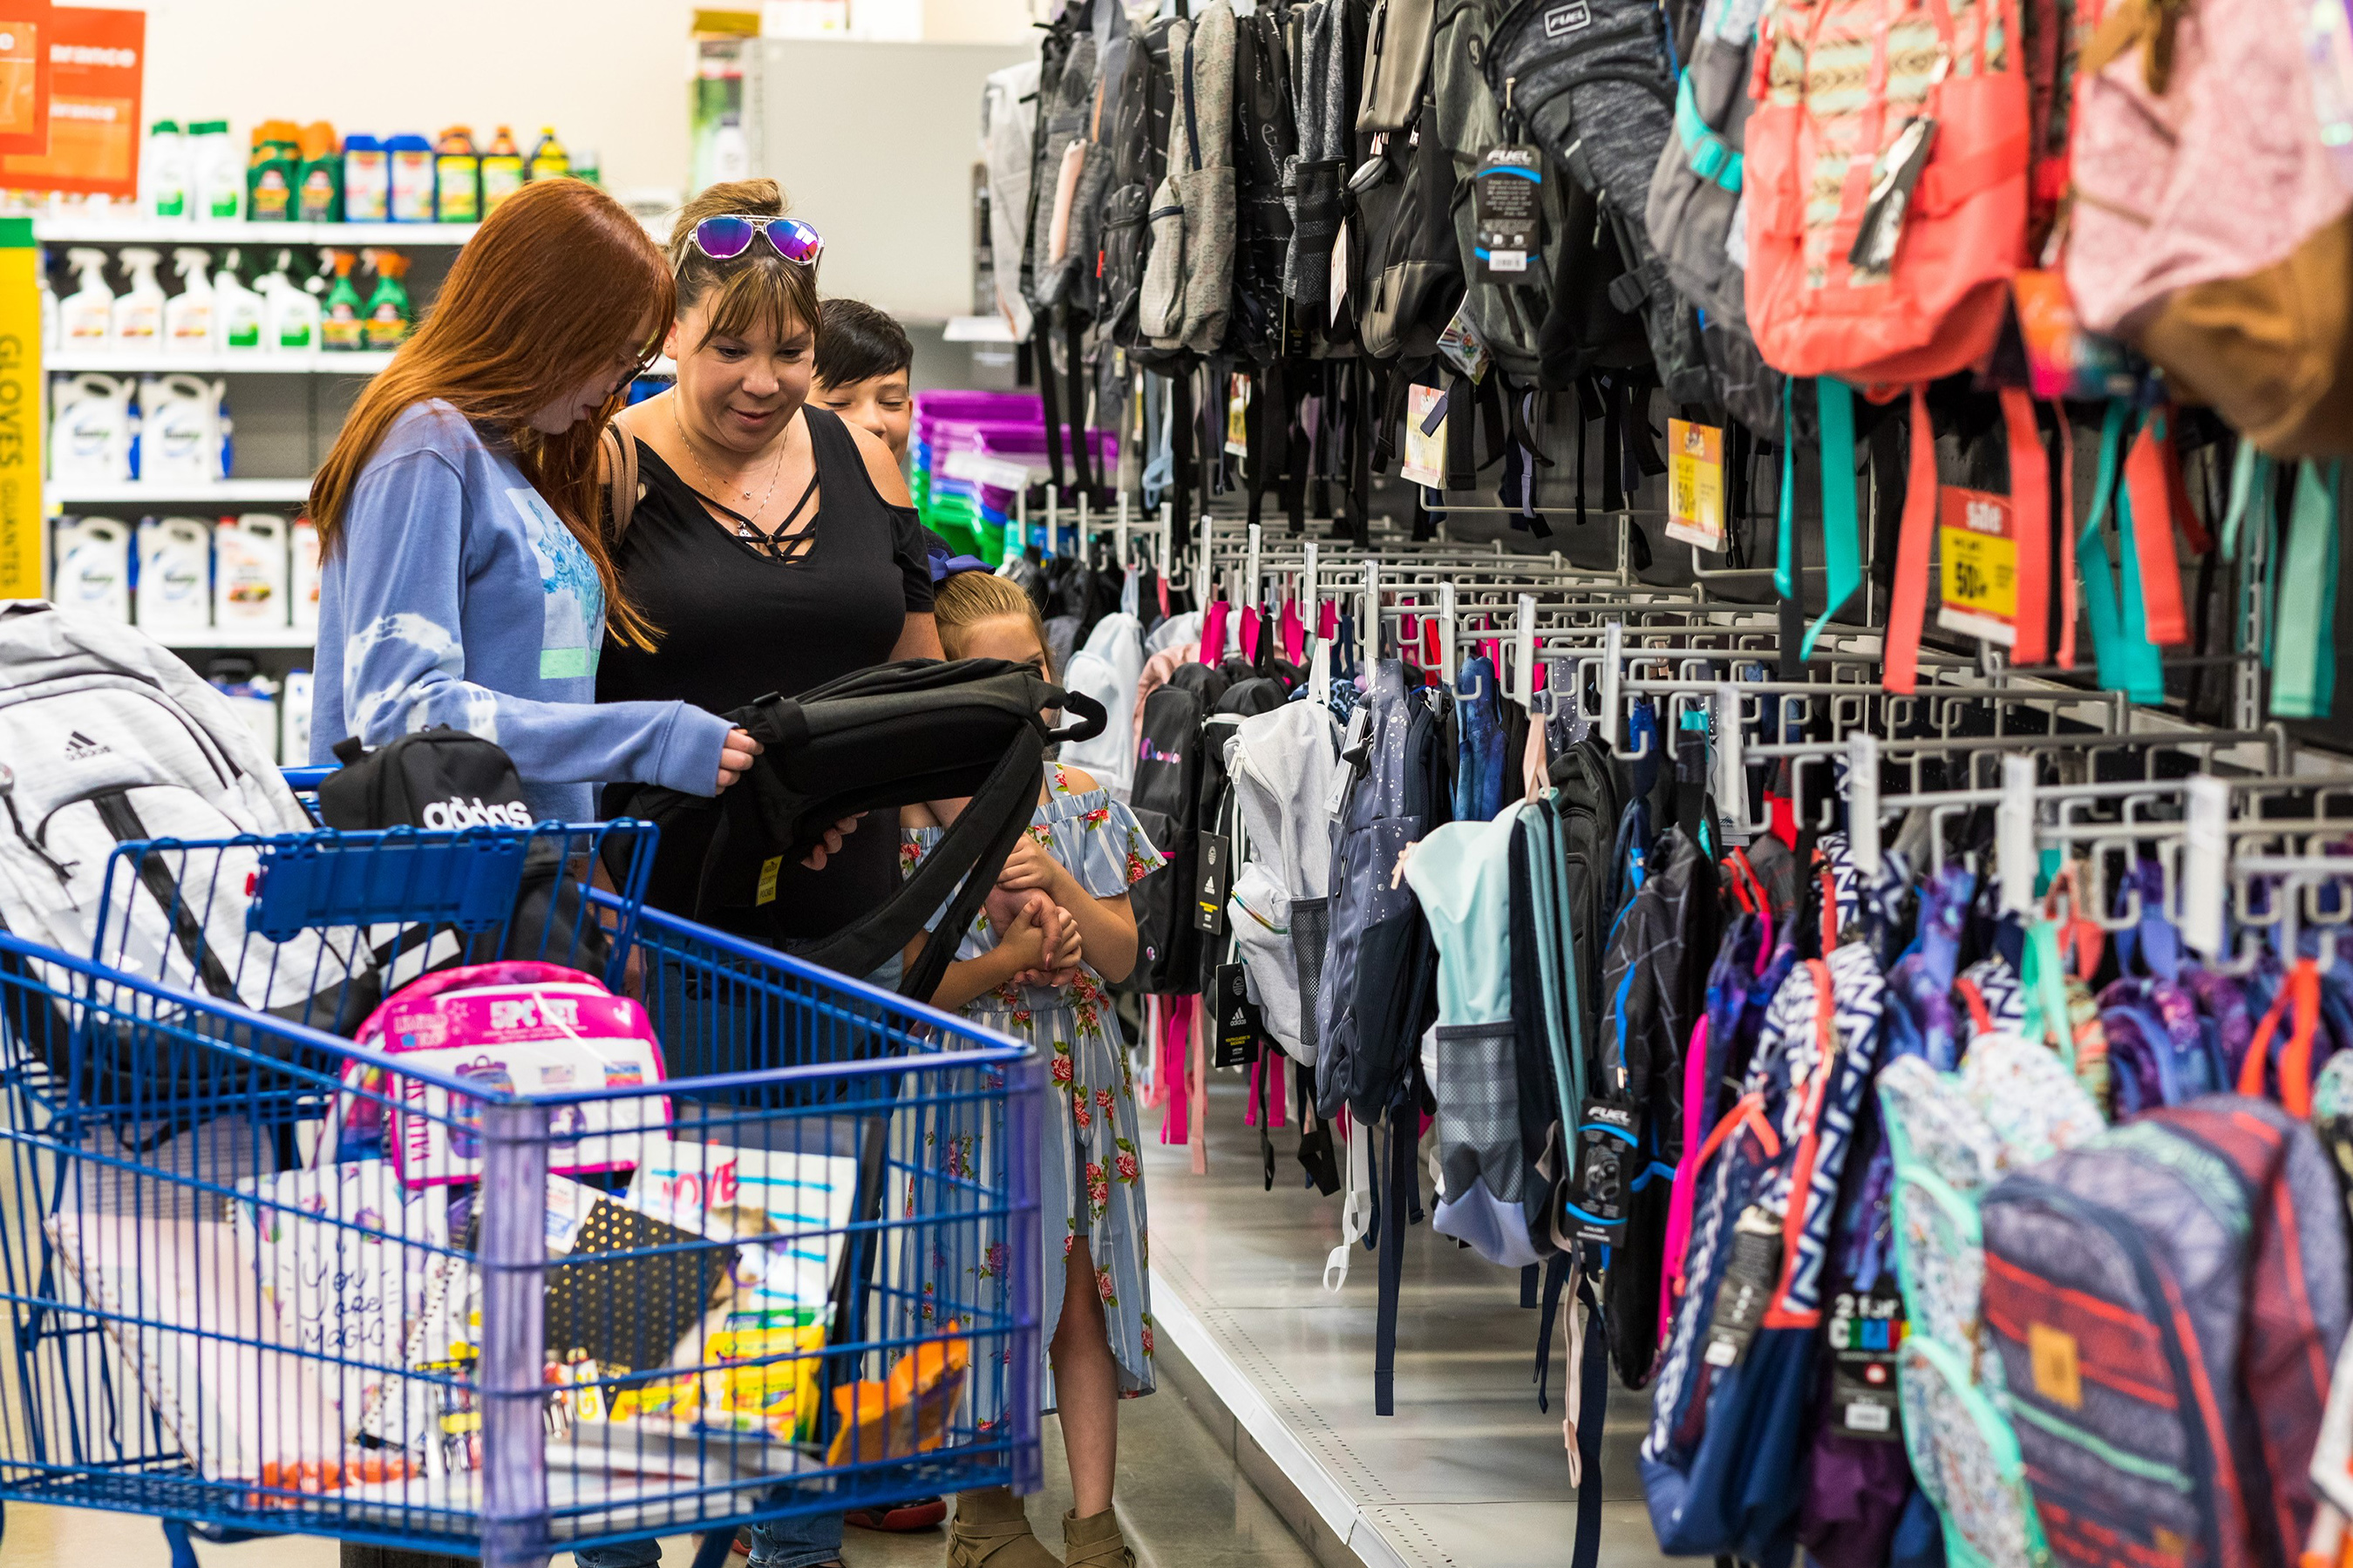 Meijer reveals top trends for back to school shopping put upgrading backpacks and returning in style at the top of families' supply lists.